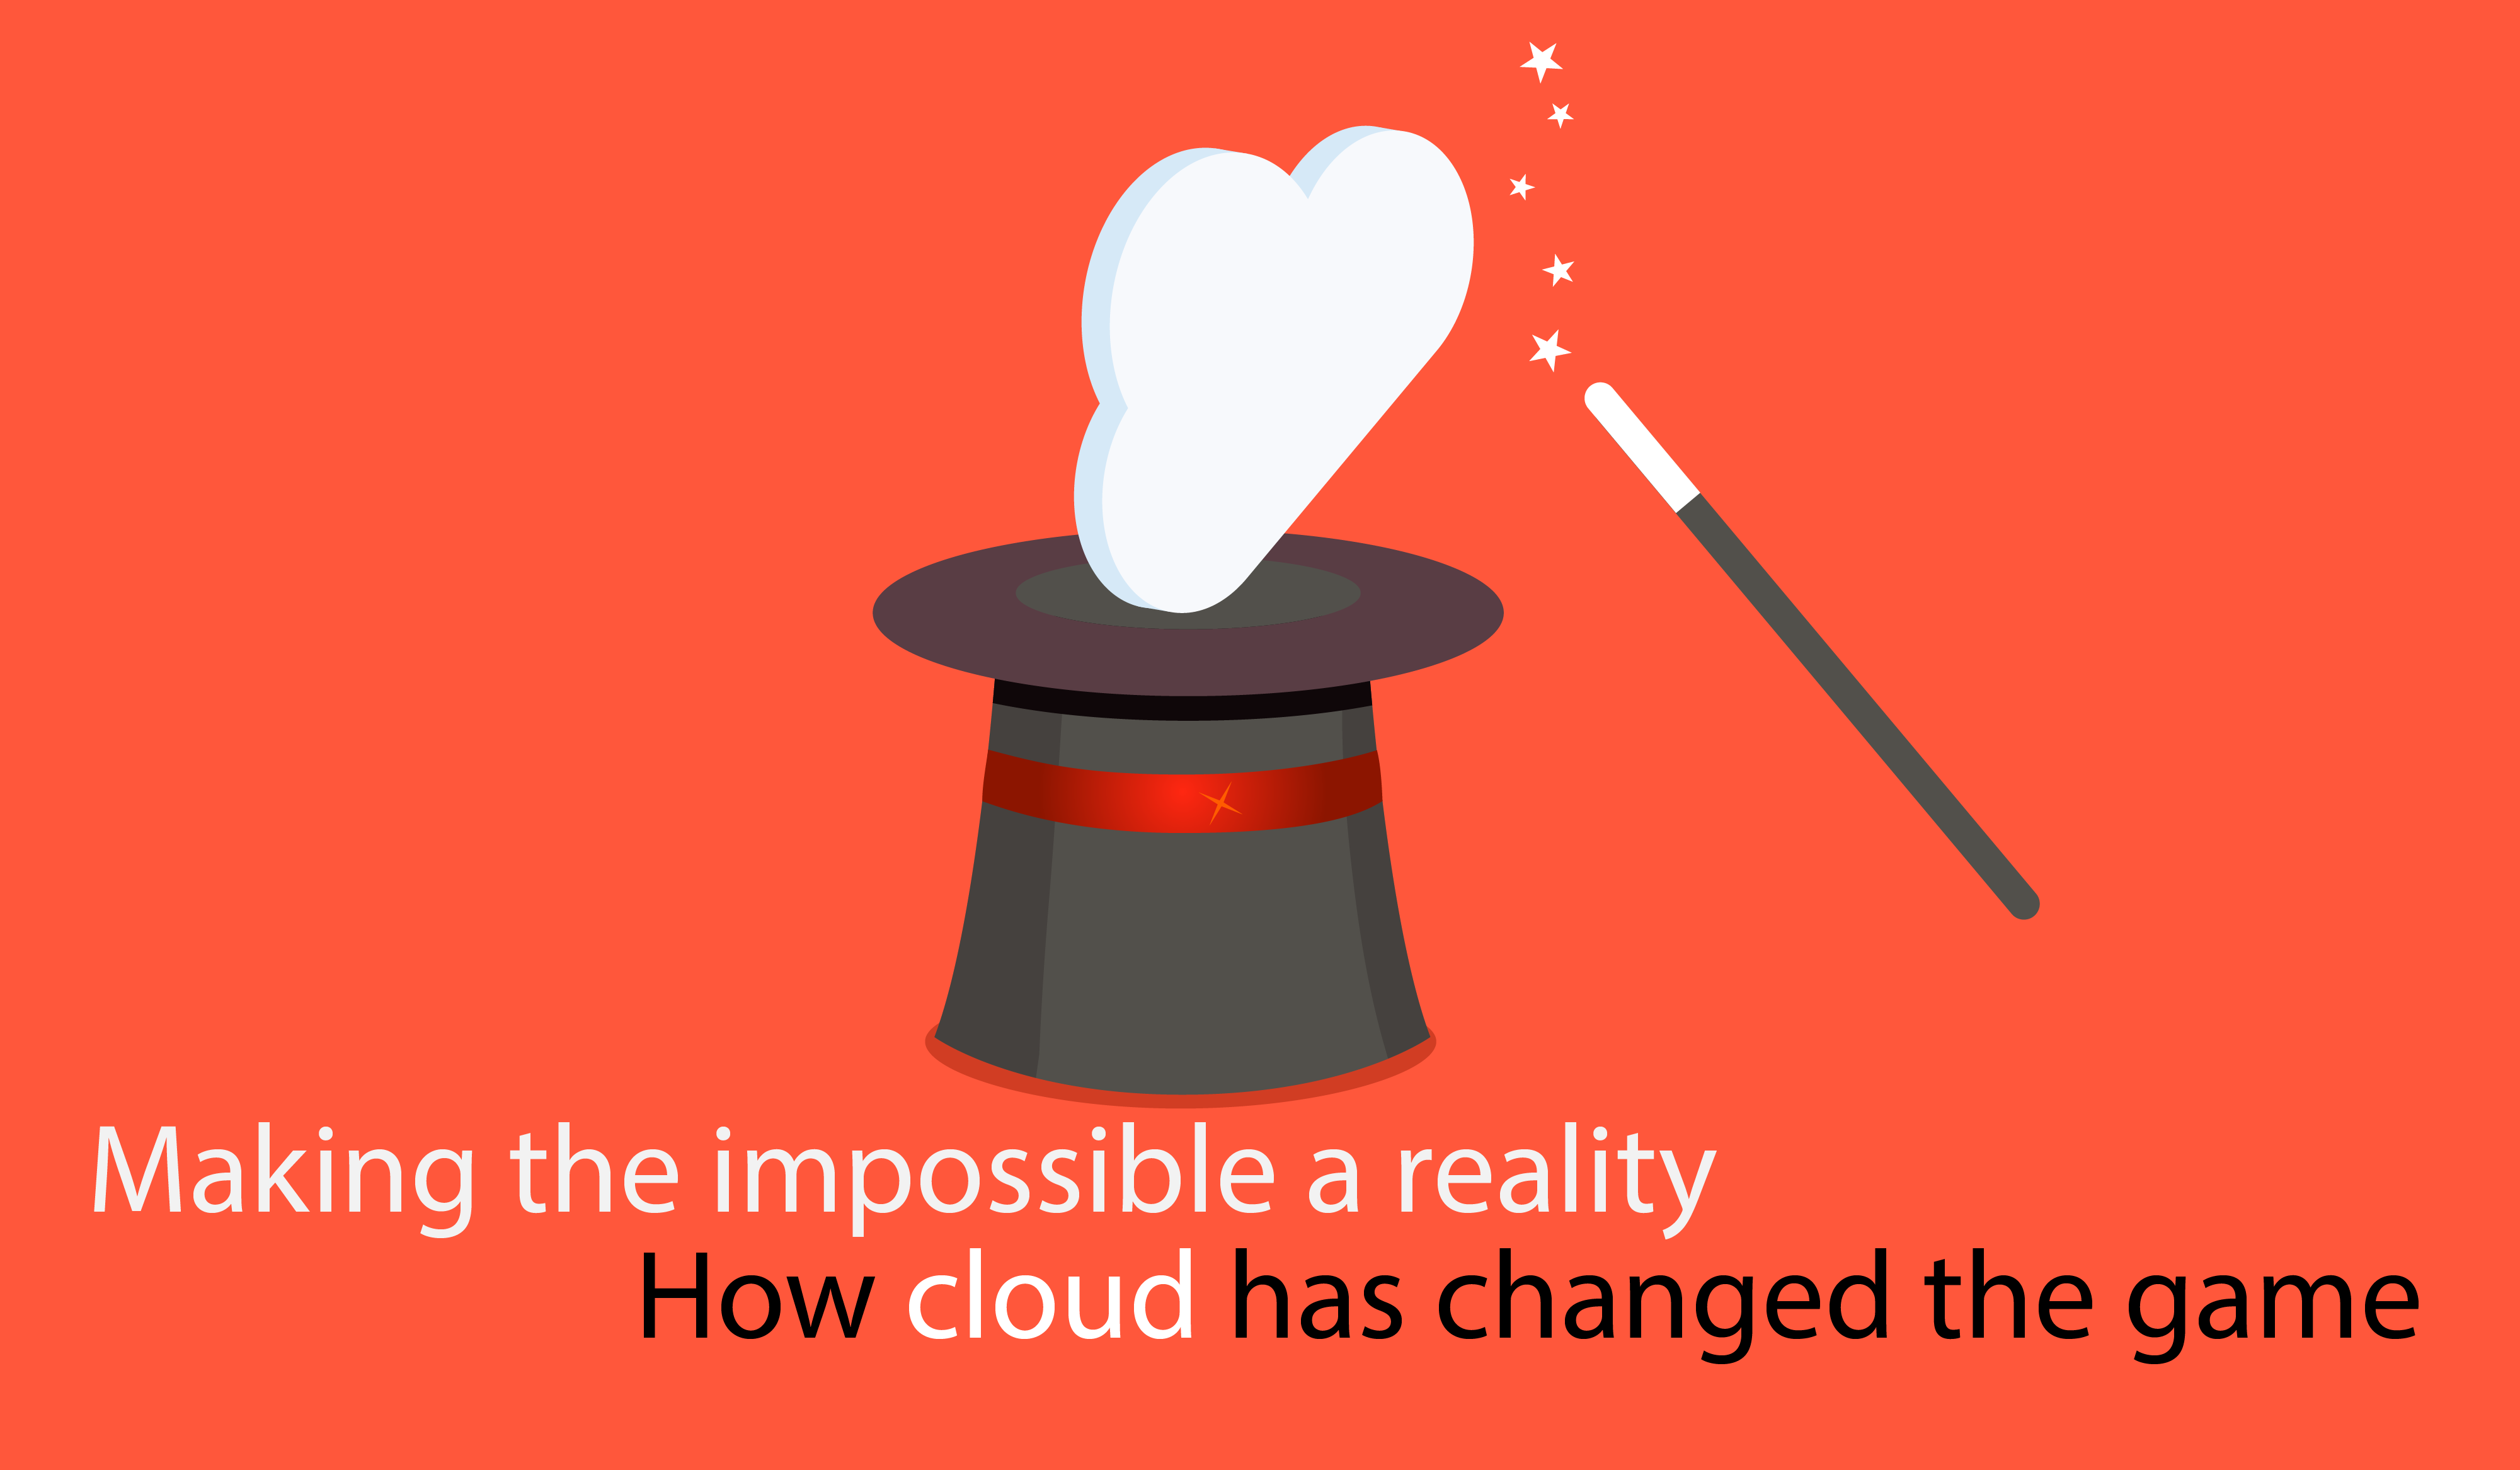 Making the impossible a reality: How cloud has changed the game